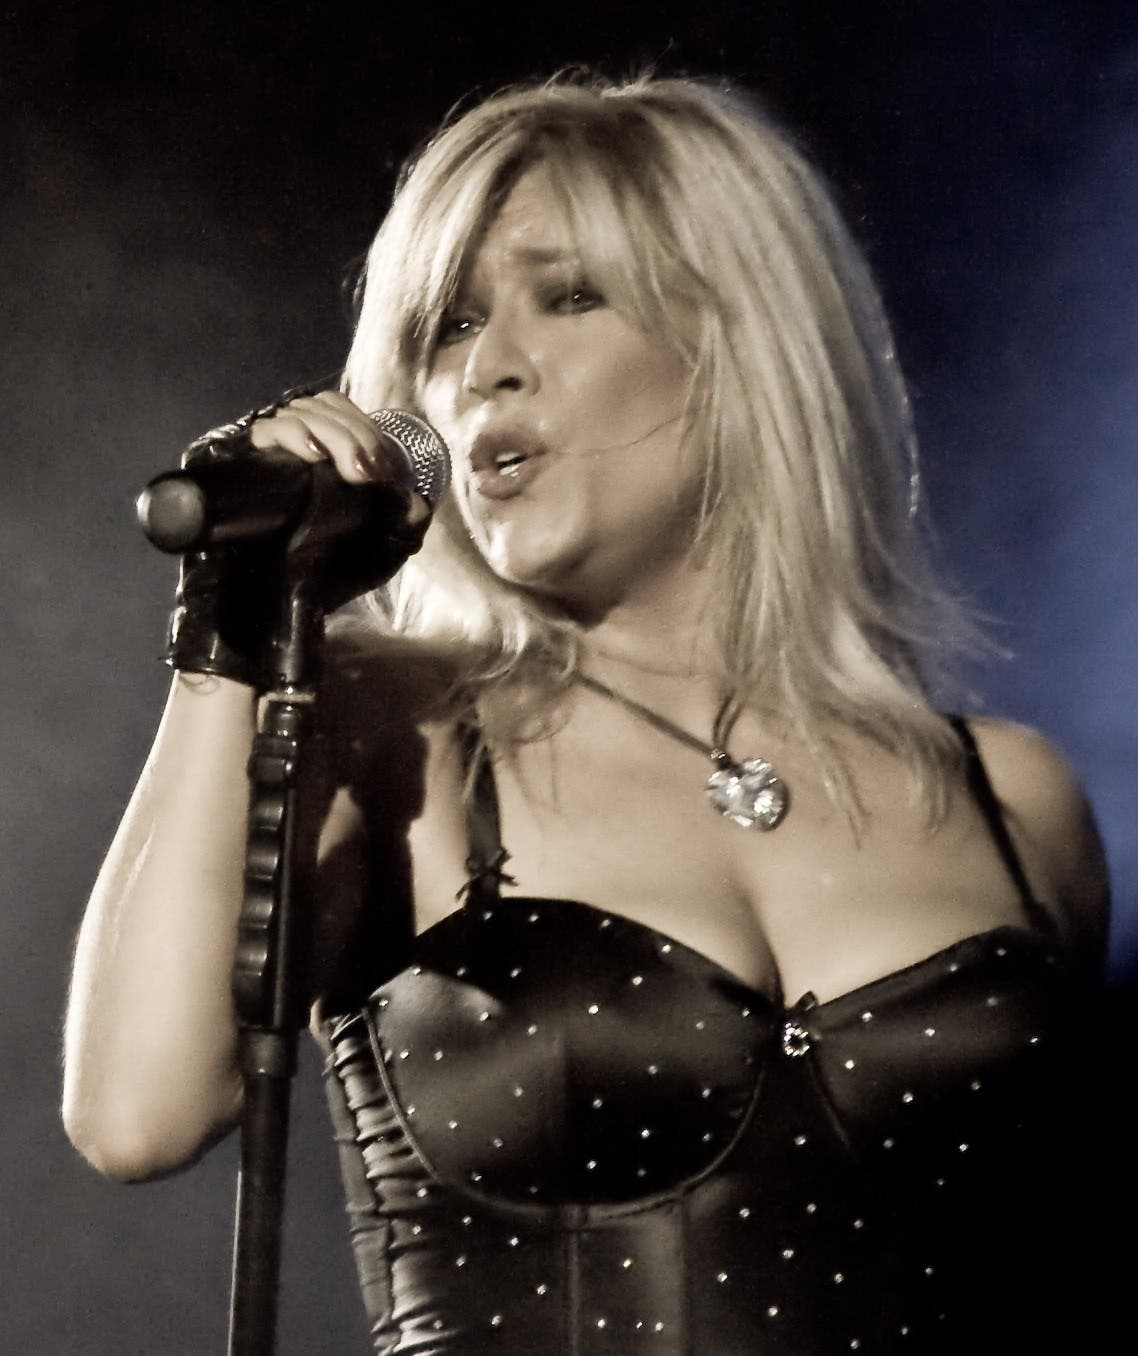 Samantha Fox, pictured here in 2009, first appeared topless in The Sun when she was aged just 16. (Photo courtesy: Wikipedia)